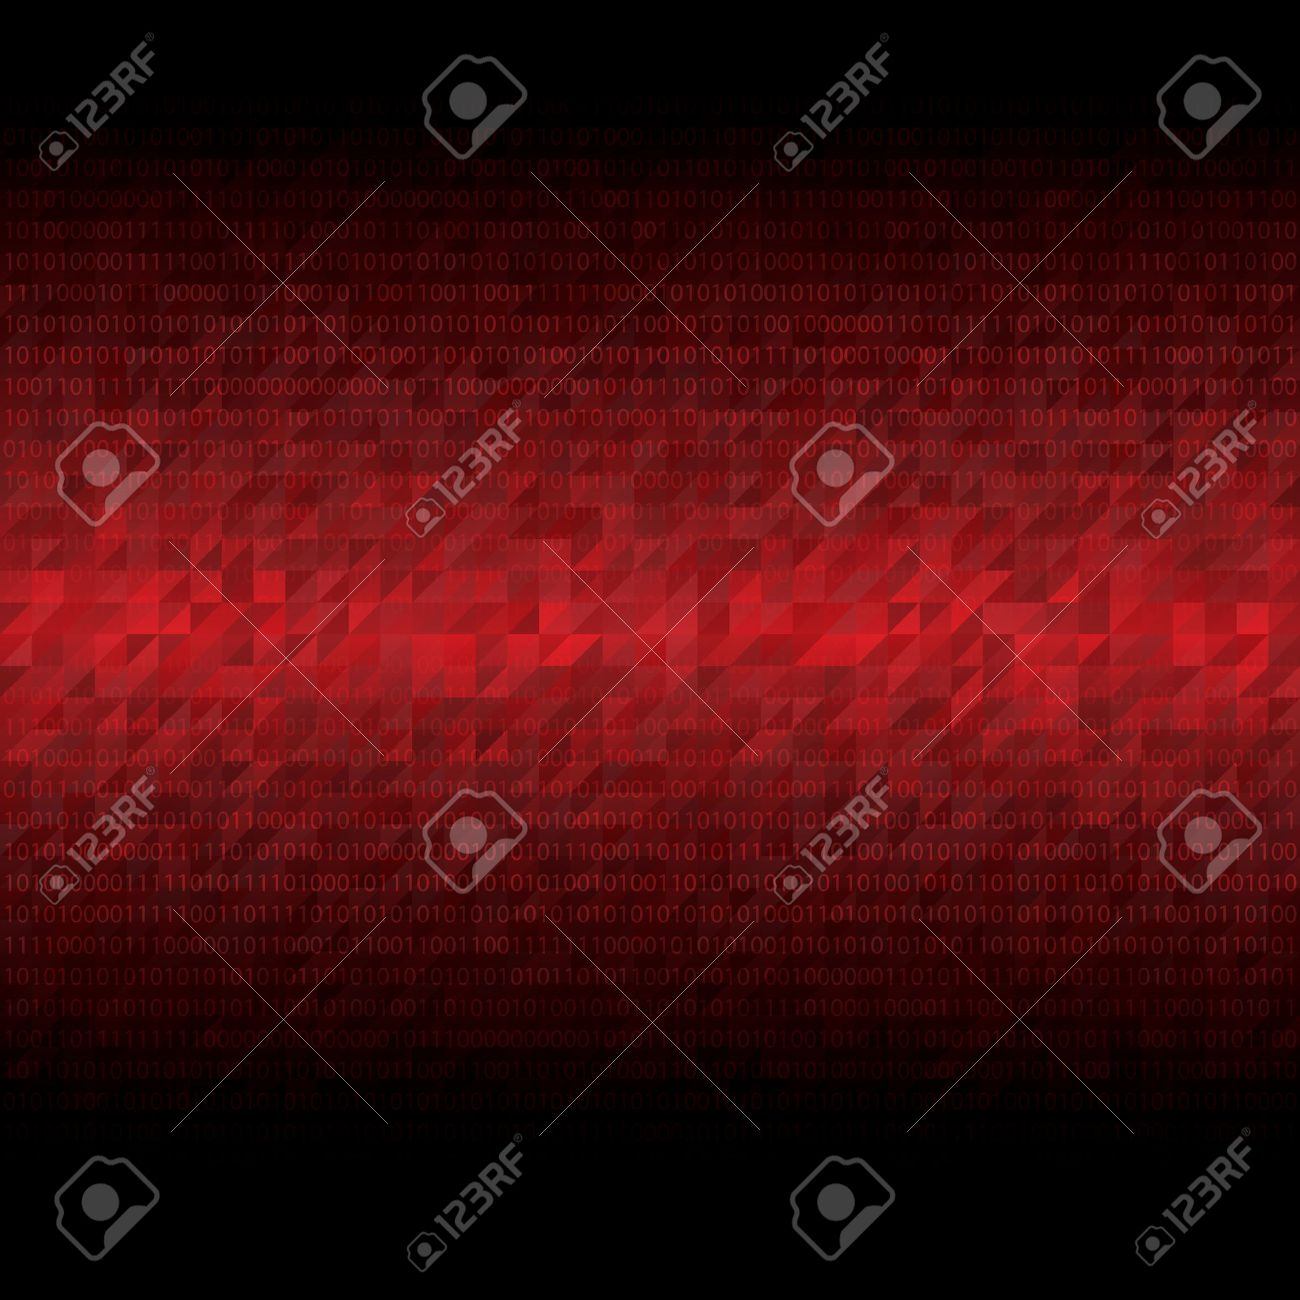 Abstract tech binary red background - 45061423